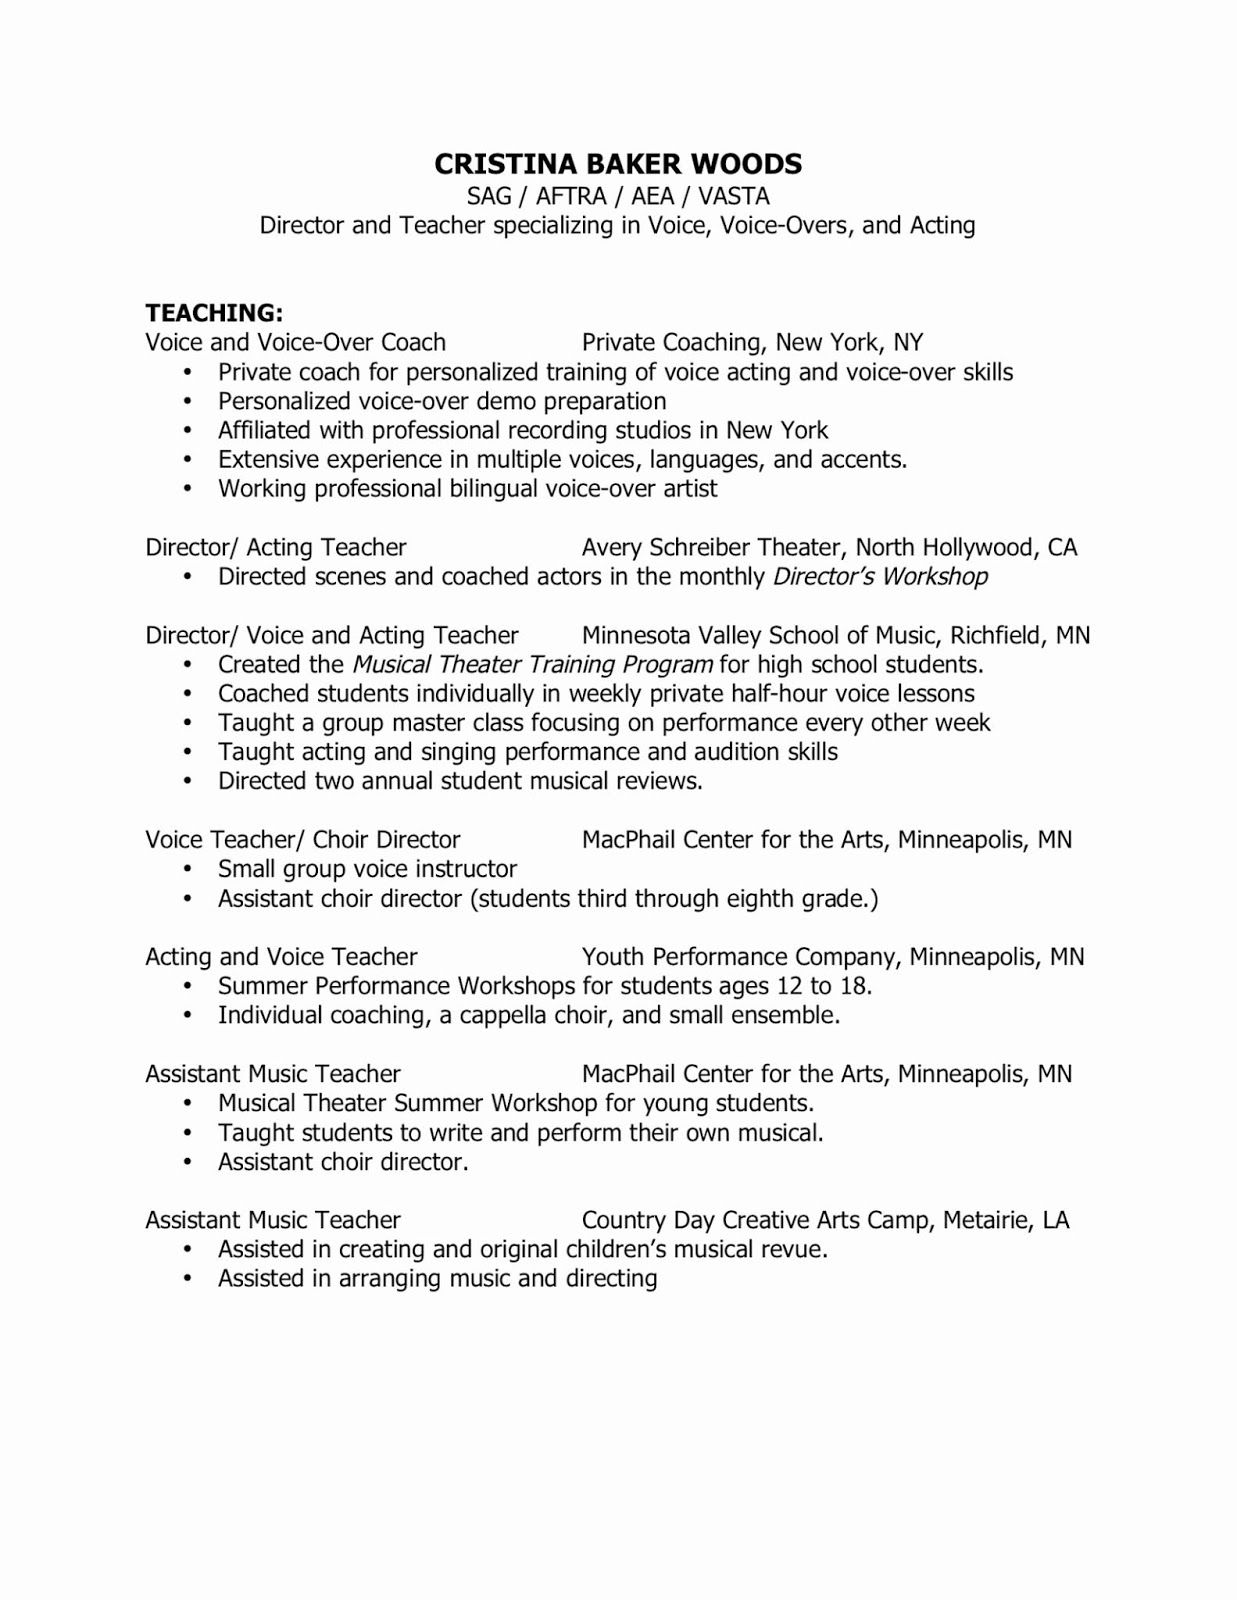 Basketball Player Resume 2019 Professional Basketball Player Resume Templates 2020 Basketball Player Re Teacher Assistant Jobs Assistant Jobs Teacher Aide Jobs